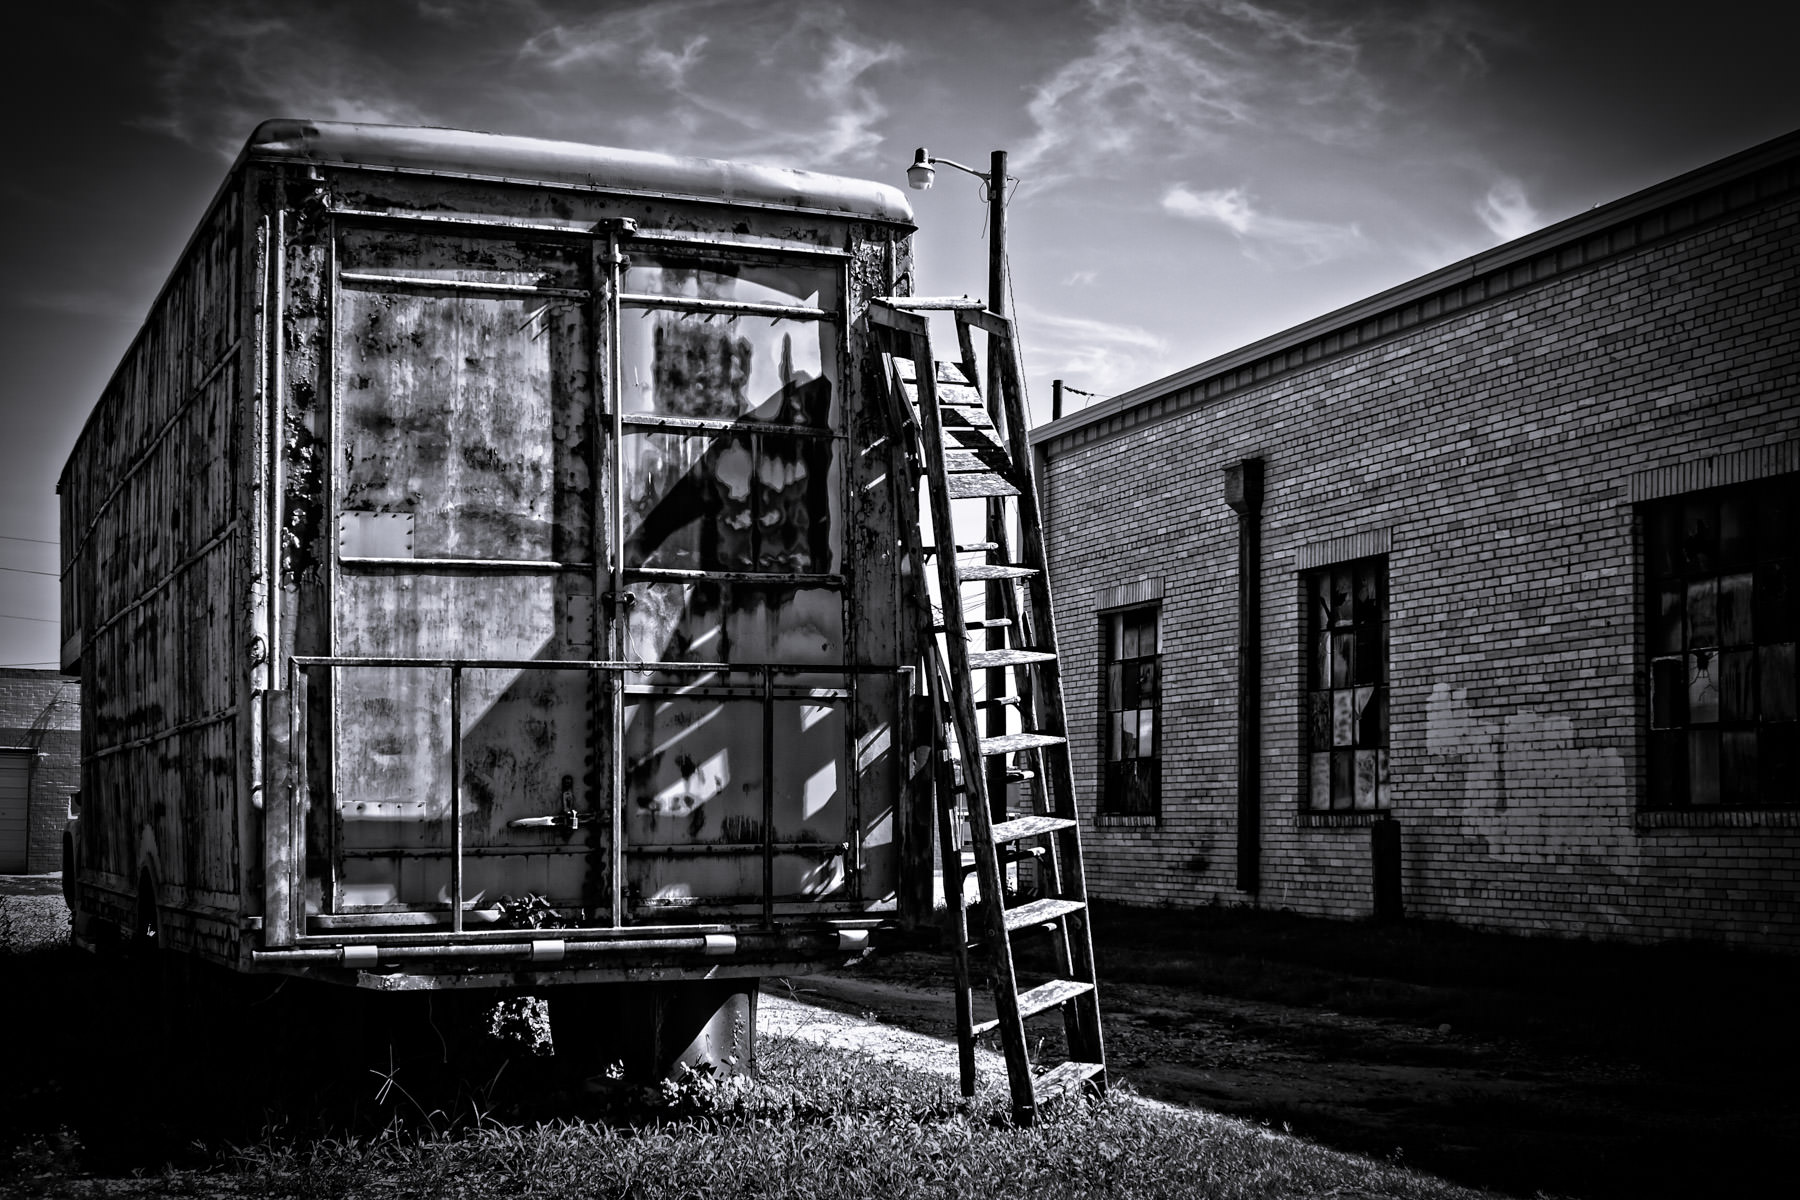 tyler panel van warehouse ladder